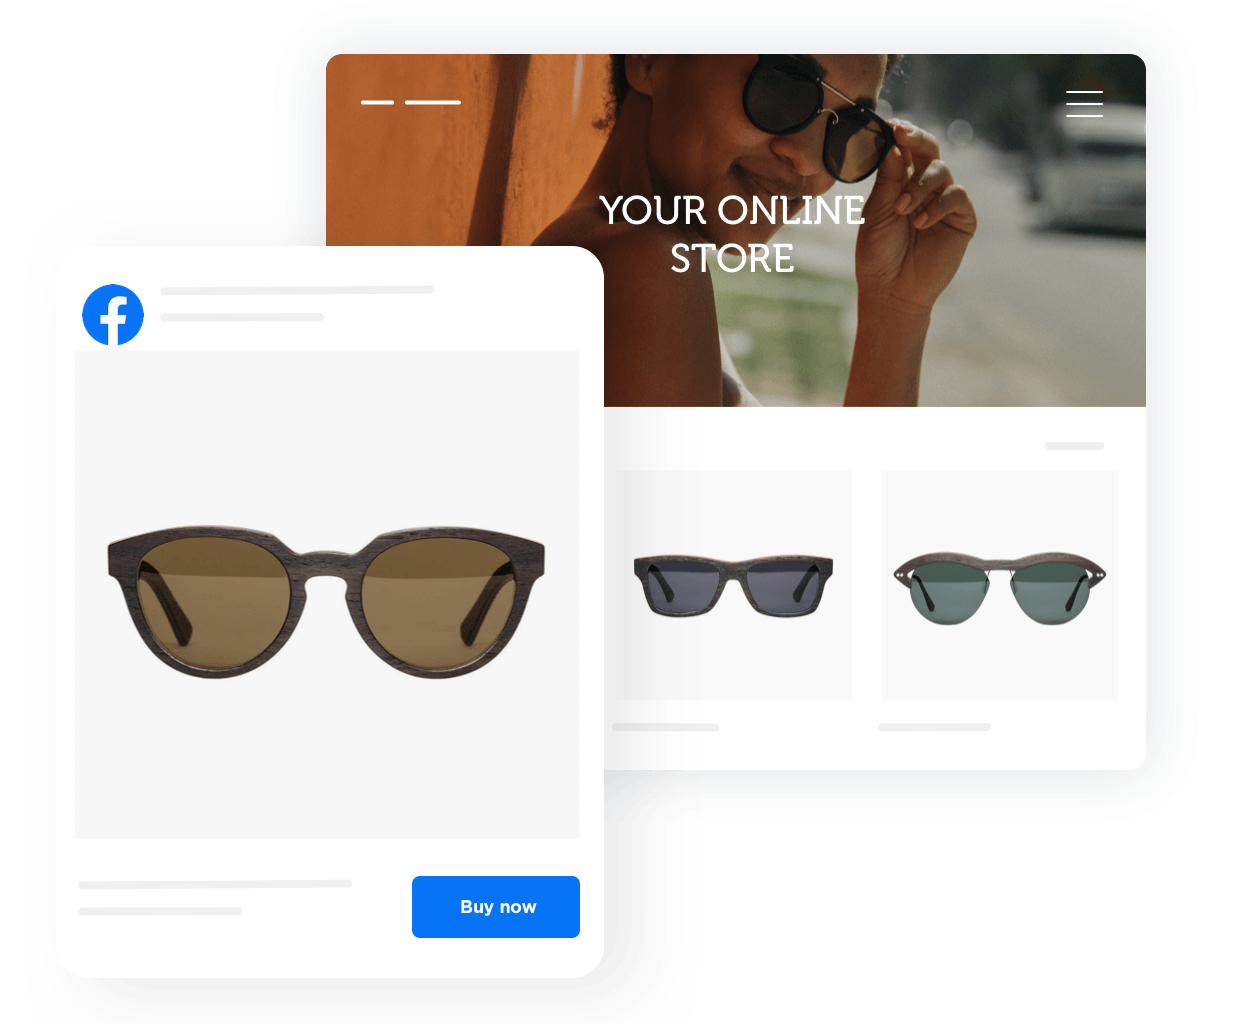 Awesome e-commerce Facebook app